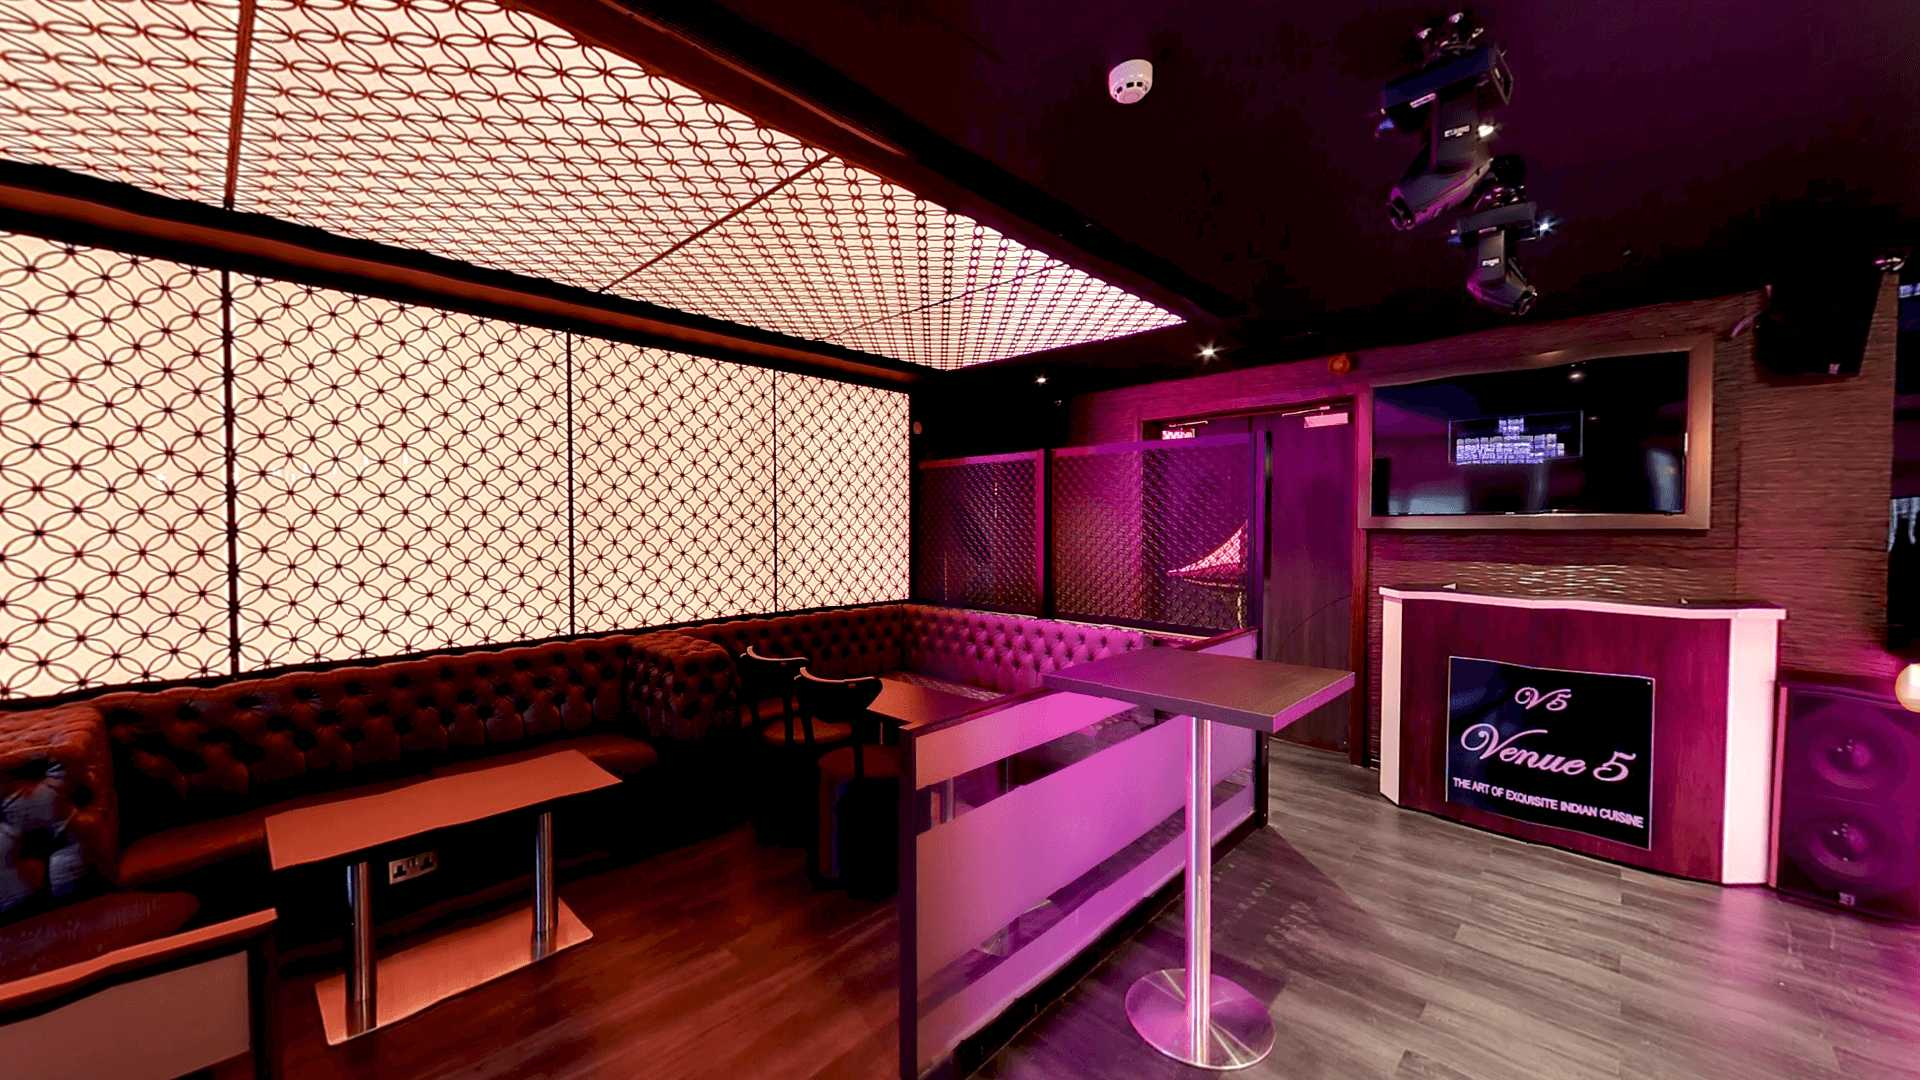 Copy of Picture of the Venue5 Lounge